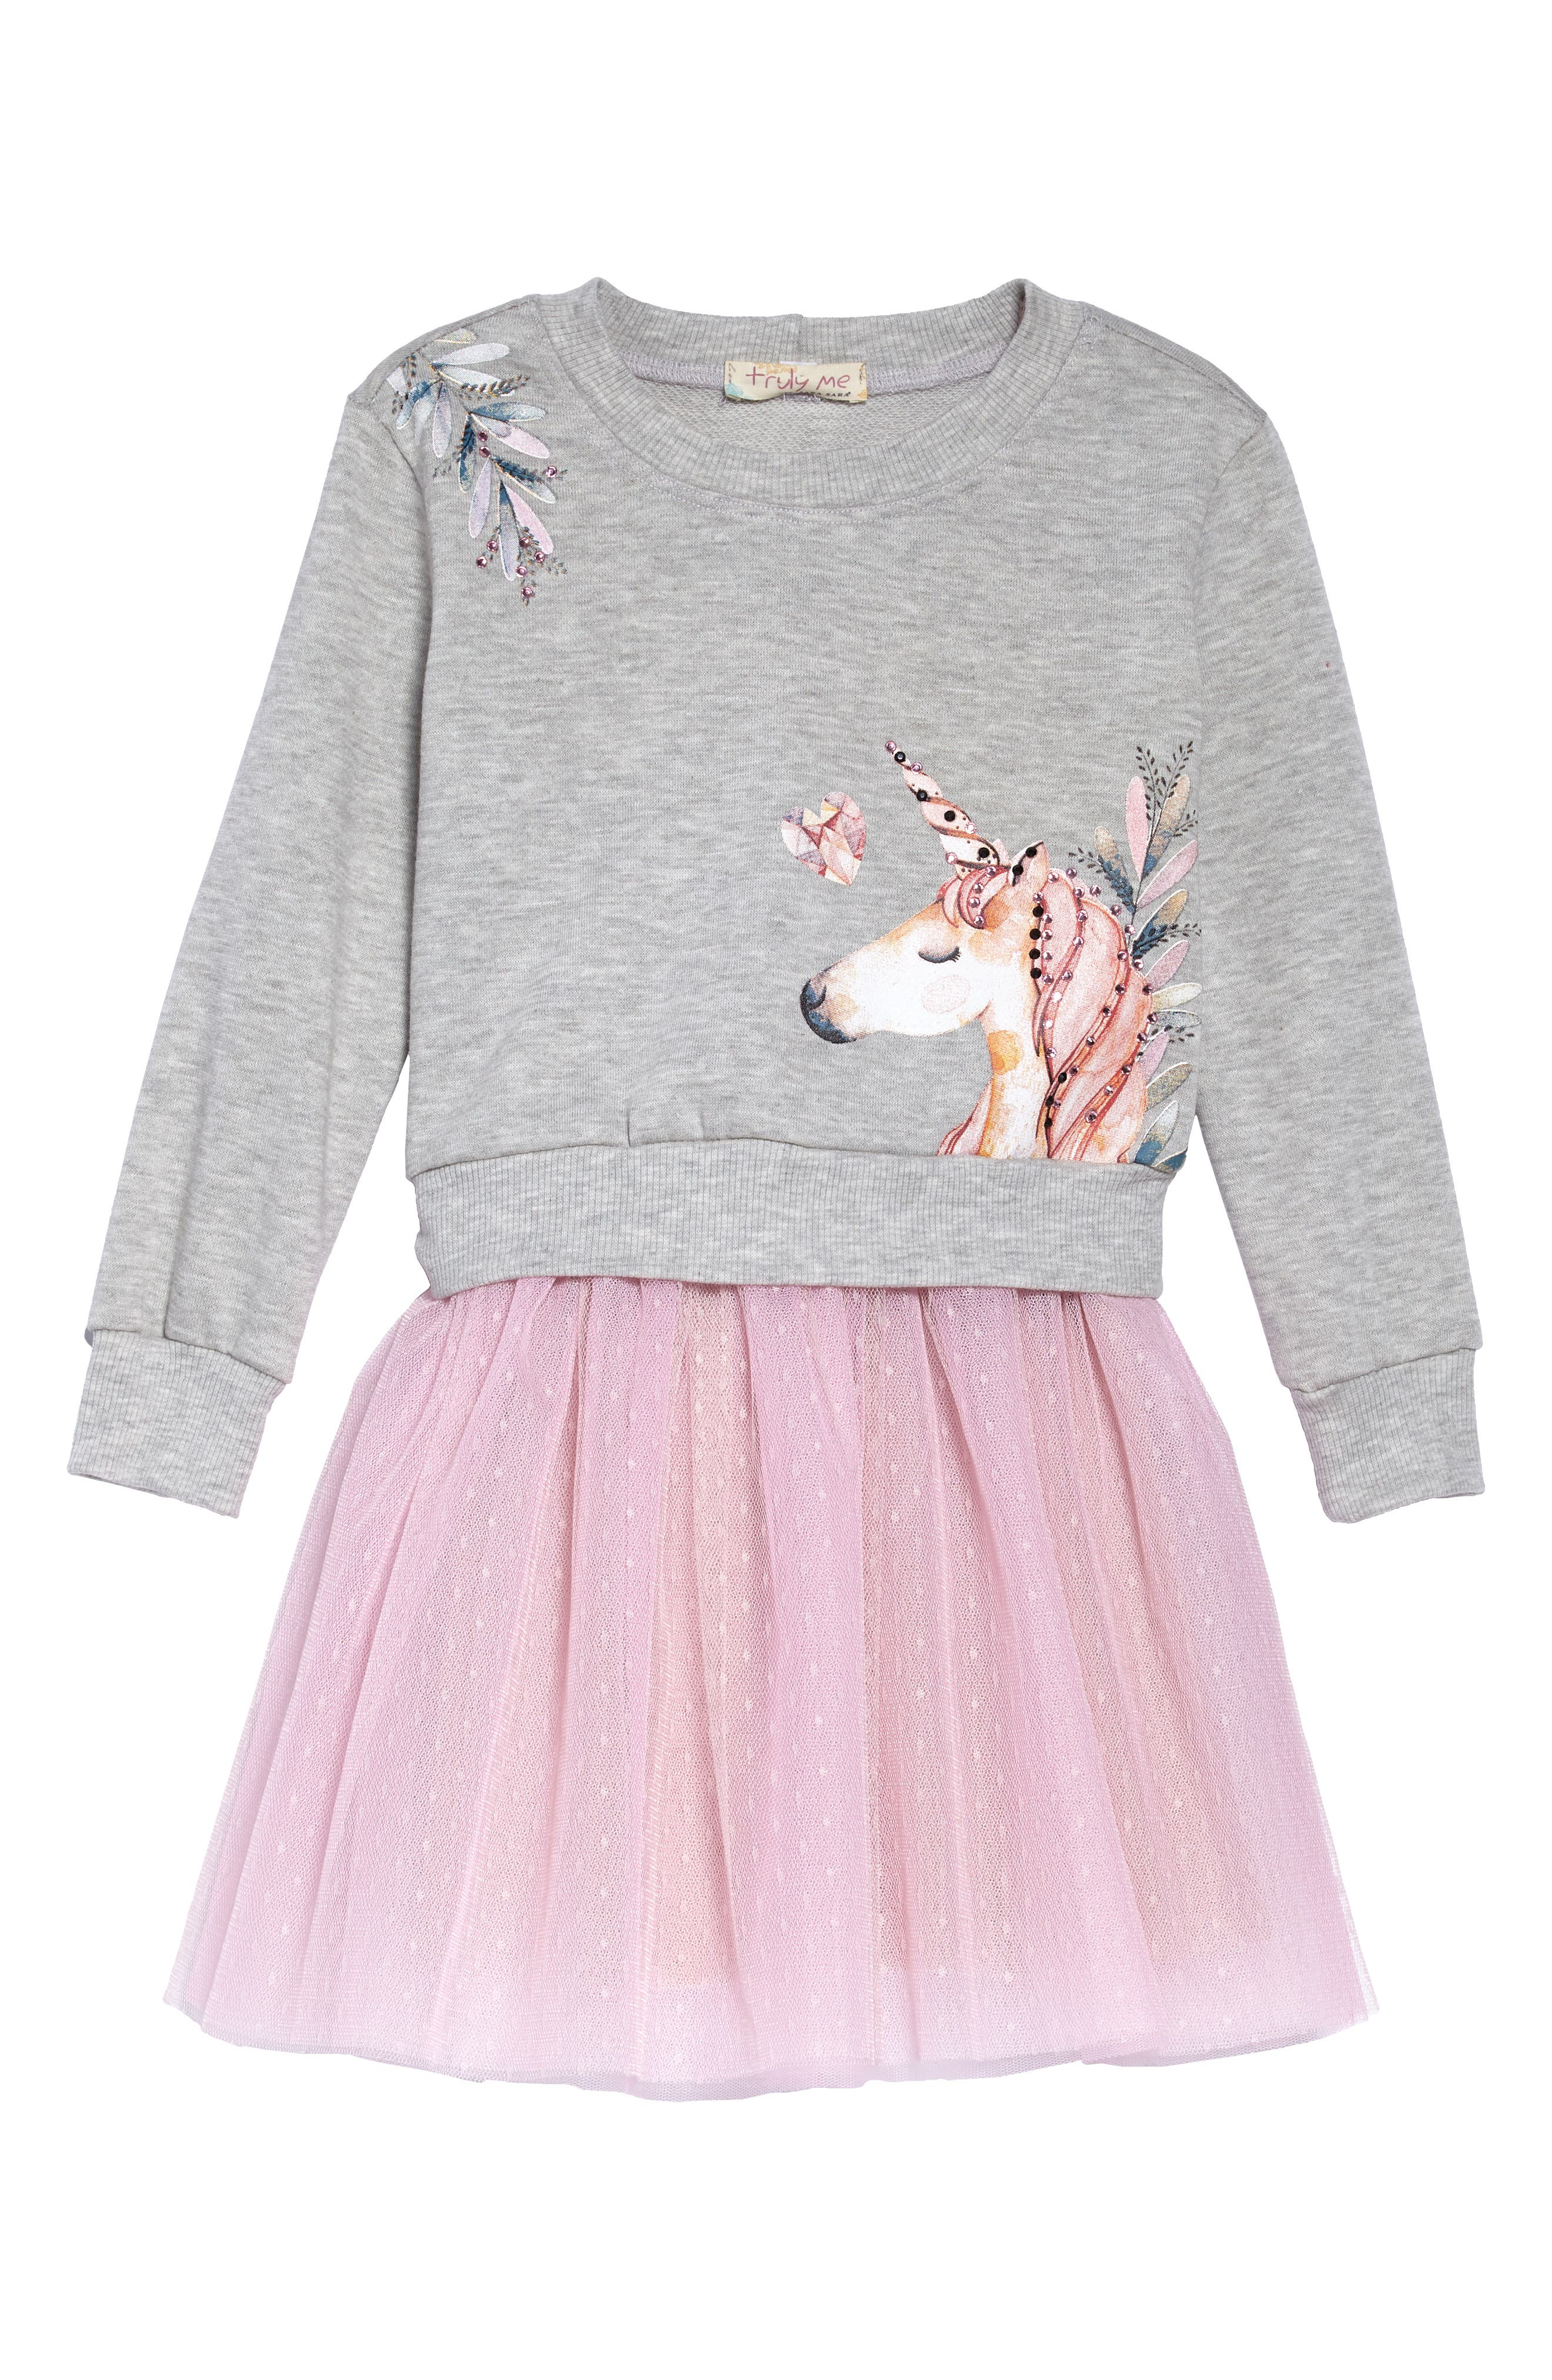 Unicorn Sweatshirt & Tutu Dress Set,                             Alternate thumbnail 2, color,                             GREY PINK